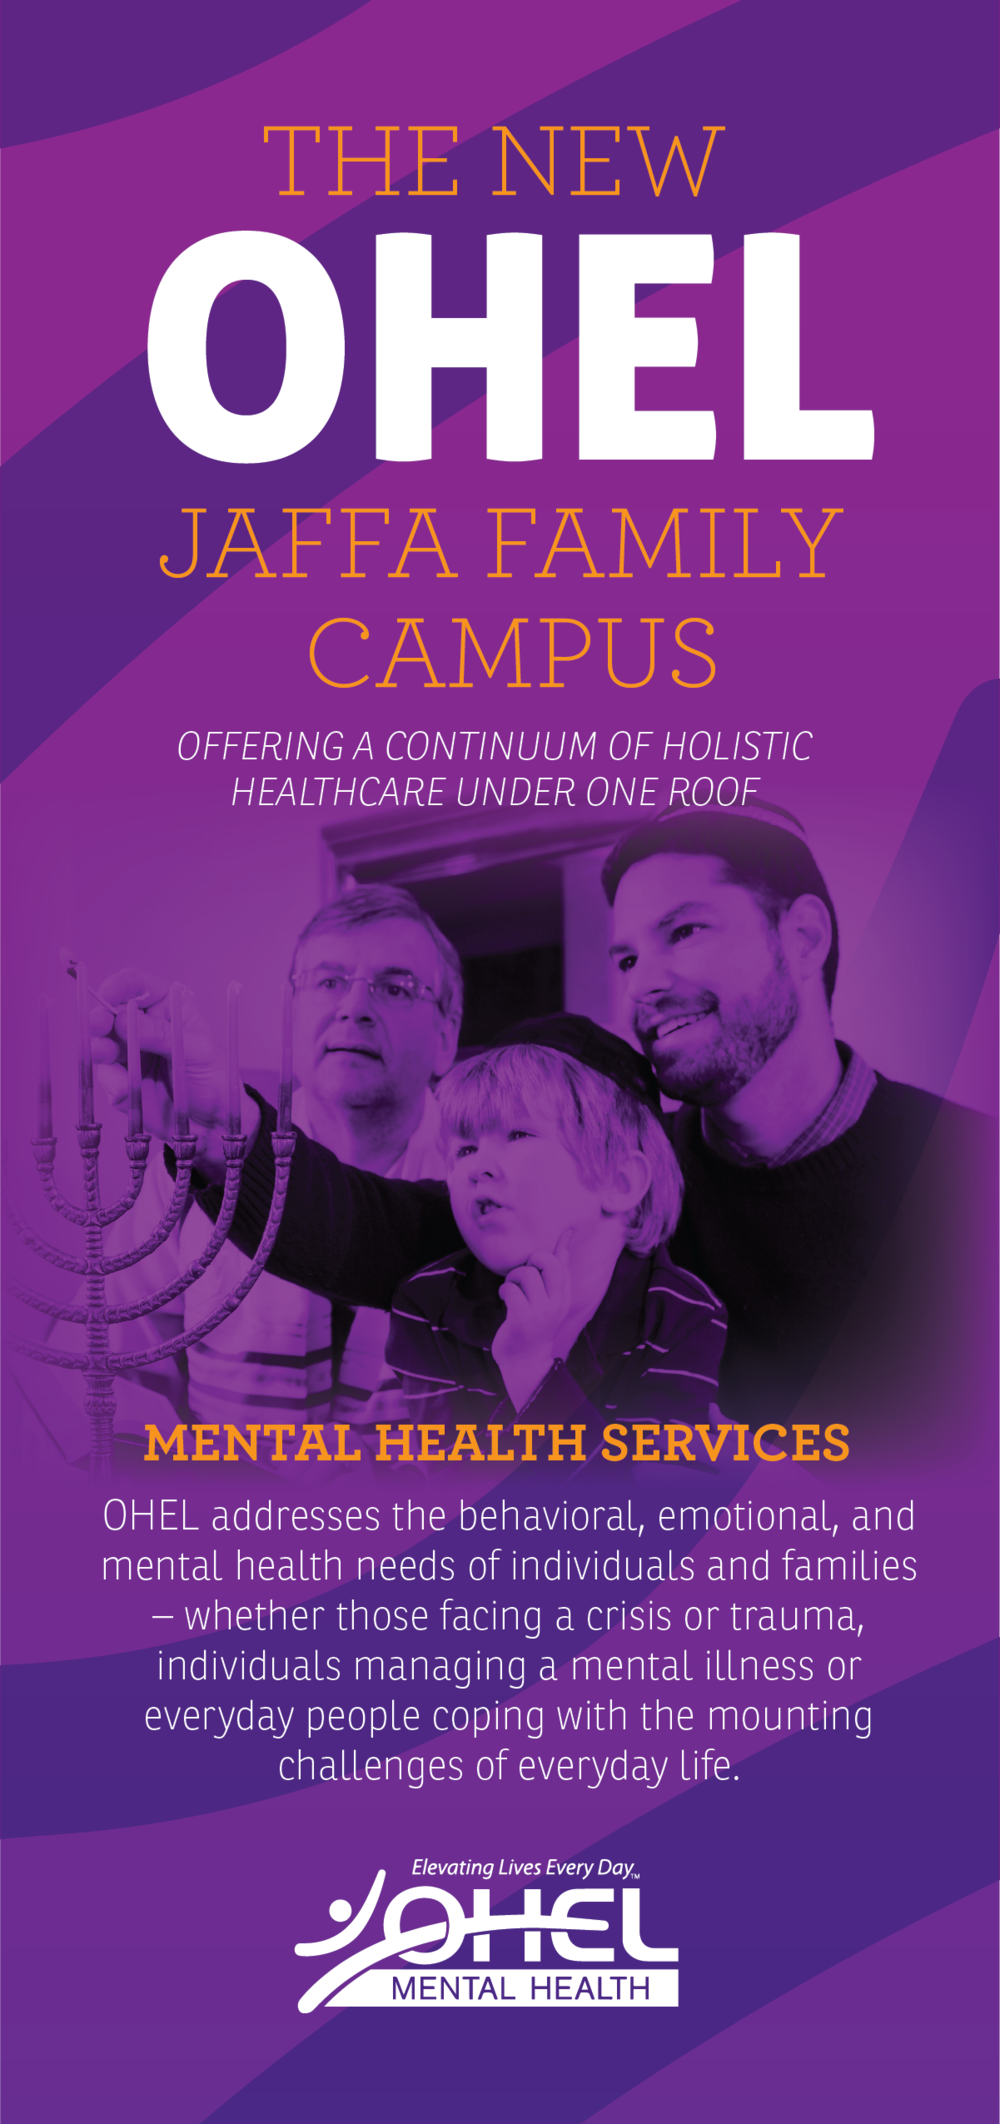 Mental Health Services - Rack Cards, Ohel